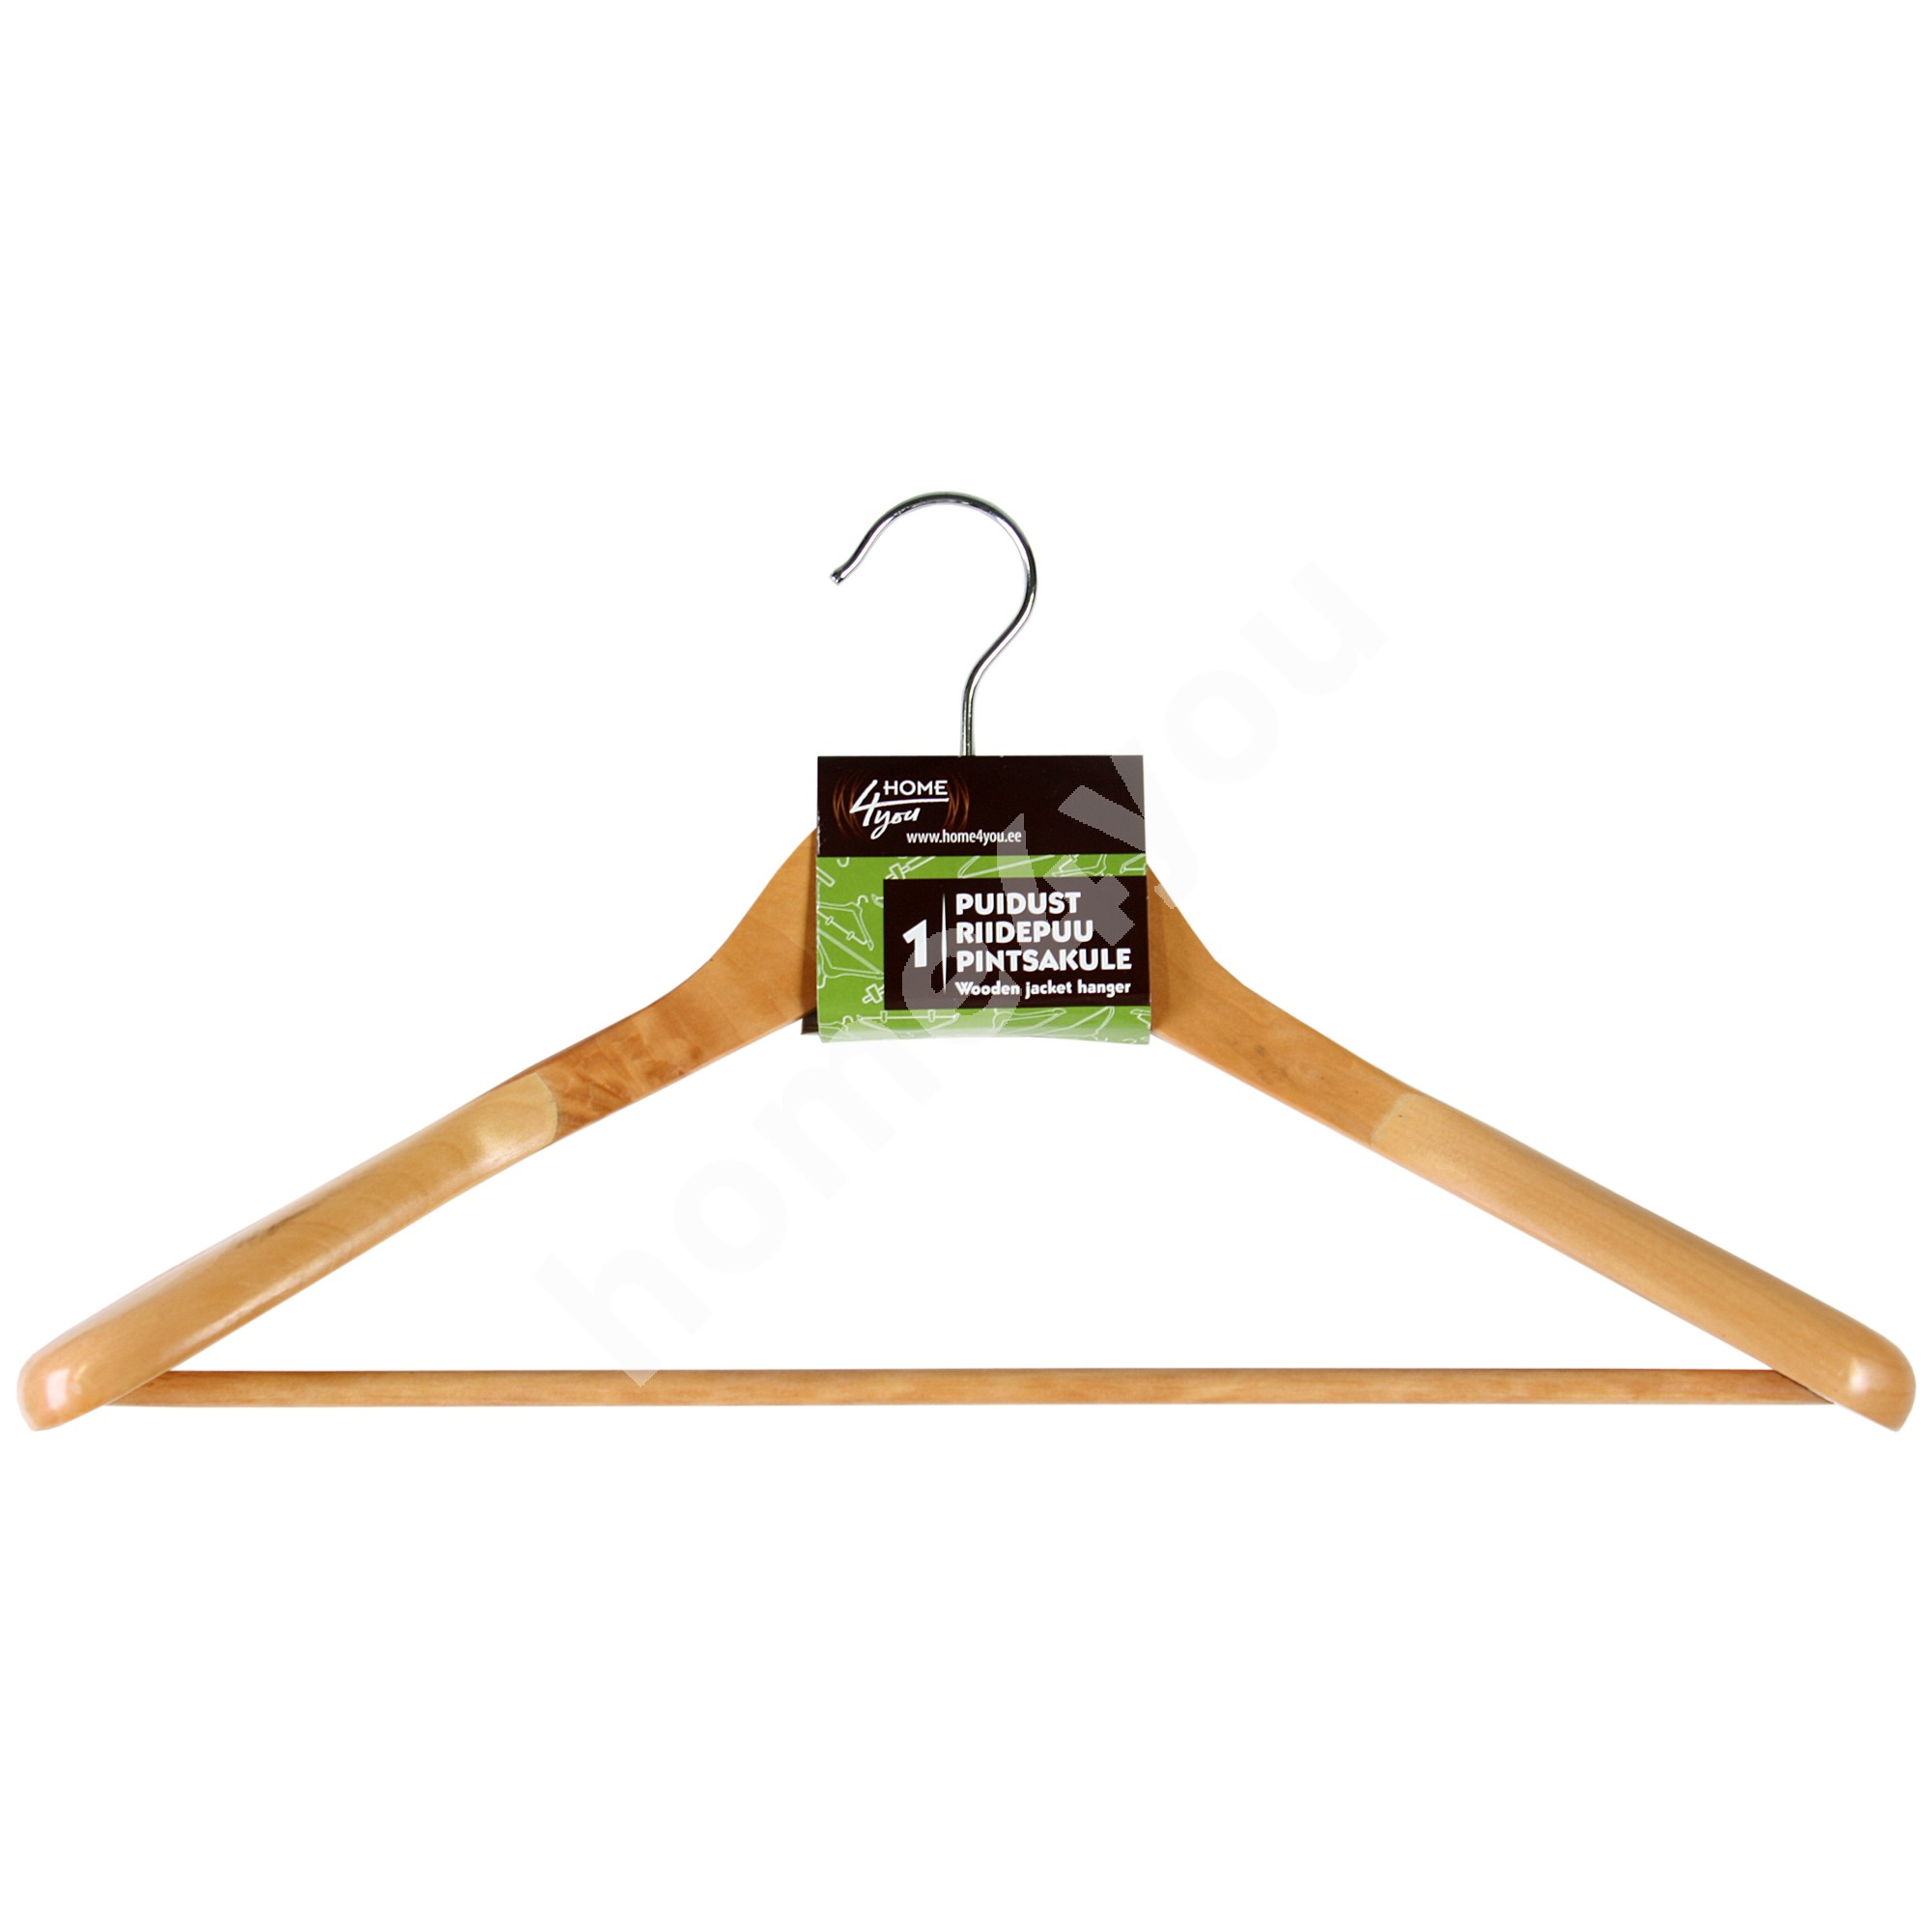 Cloth hanger for jacket 45x16x6cm, natural wood